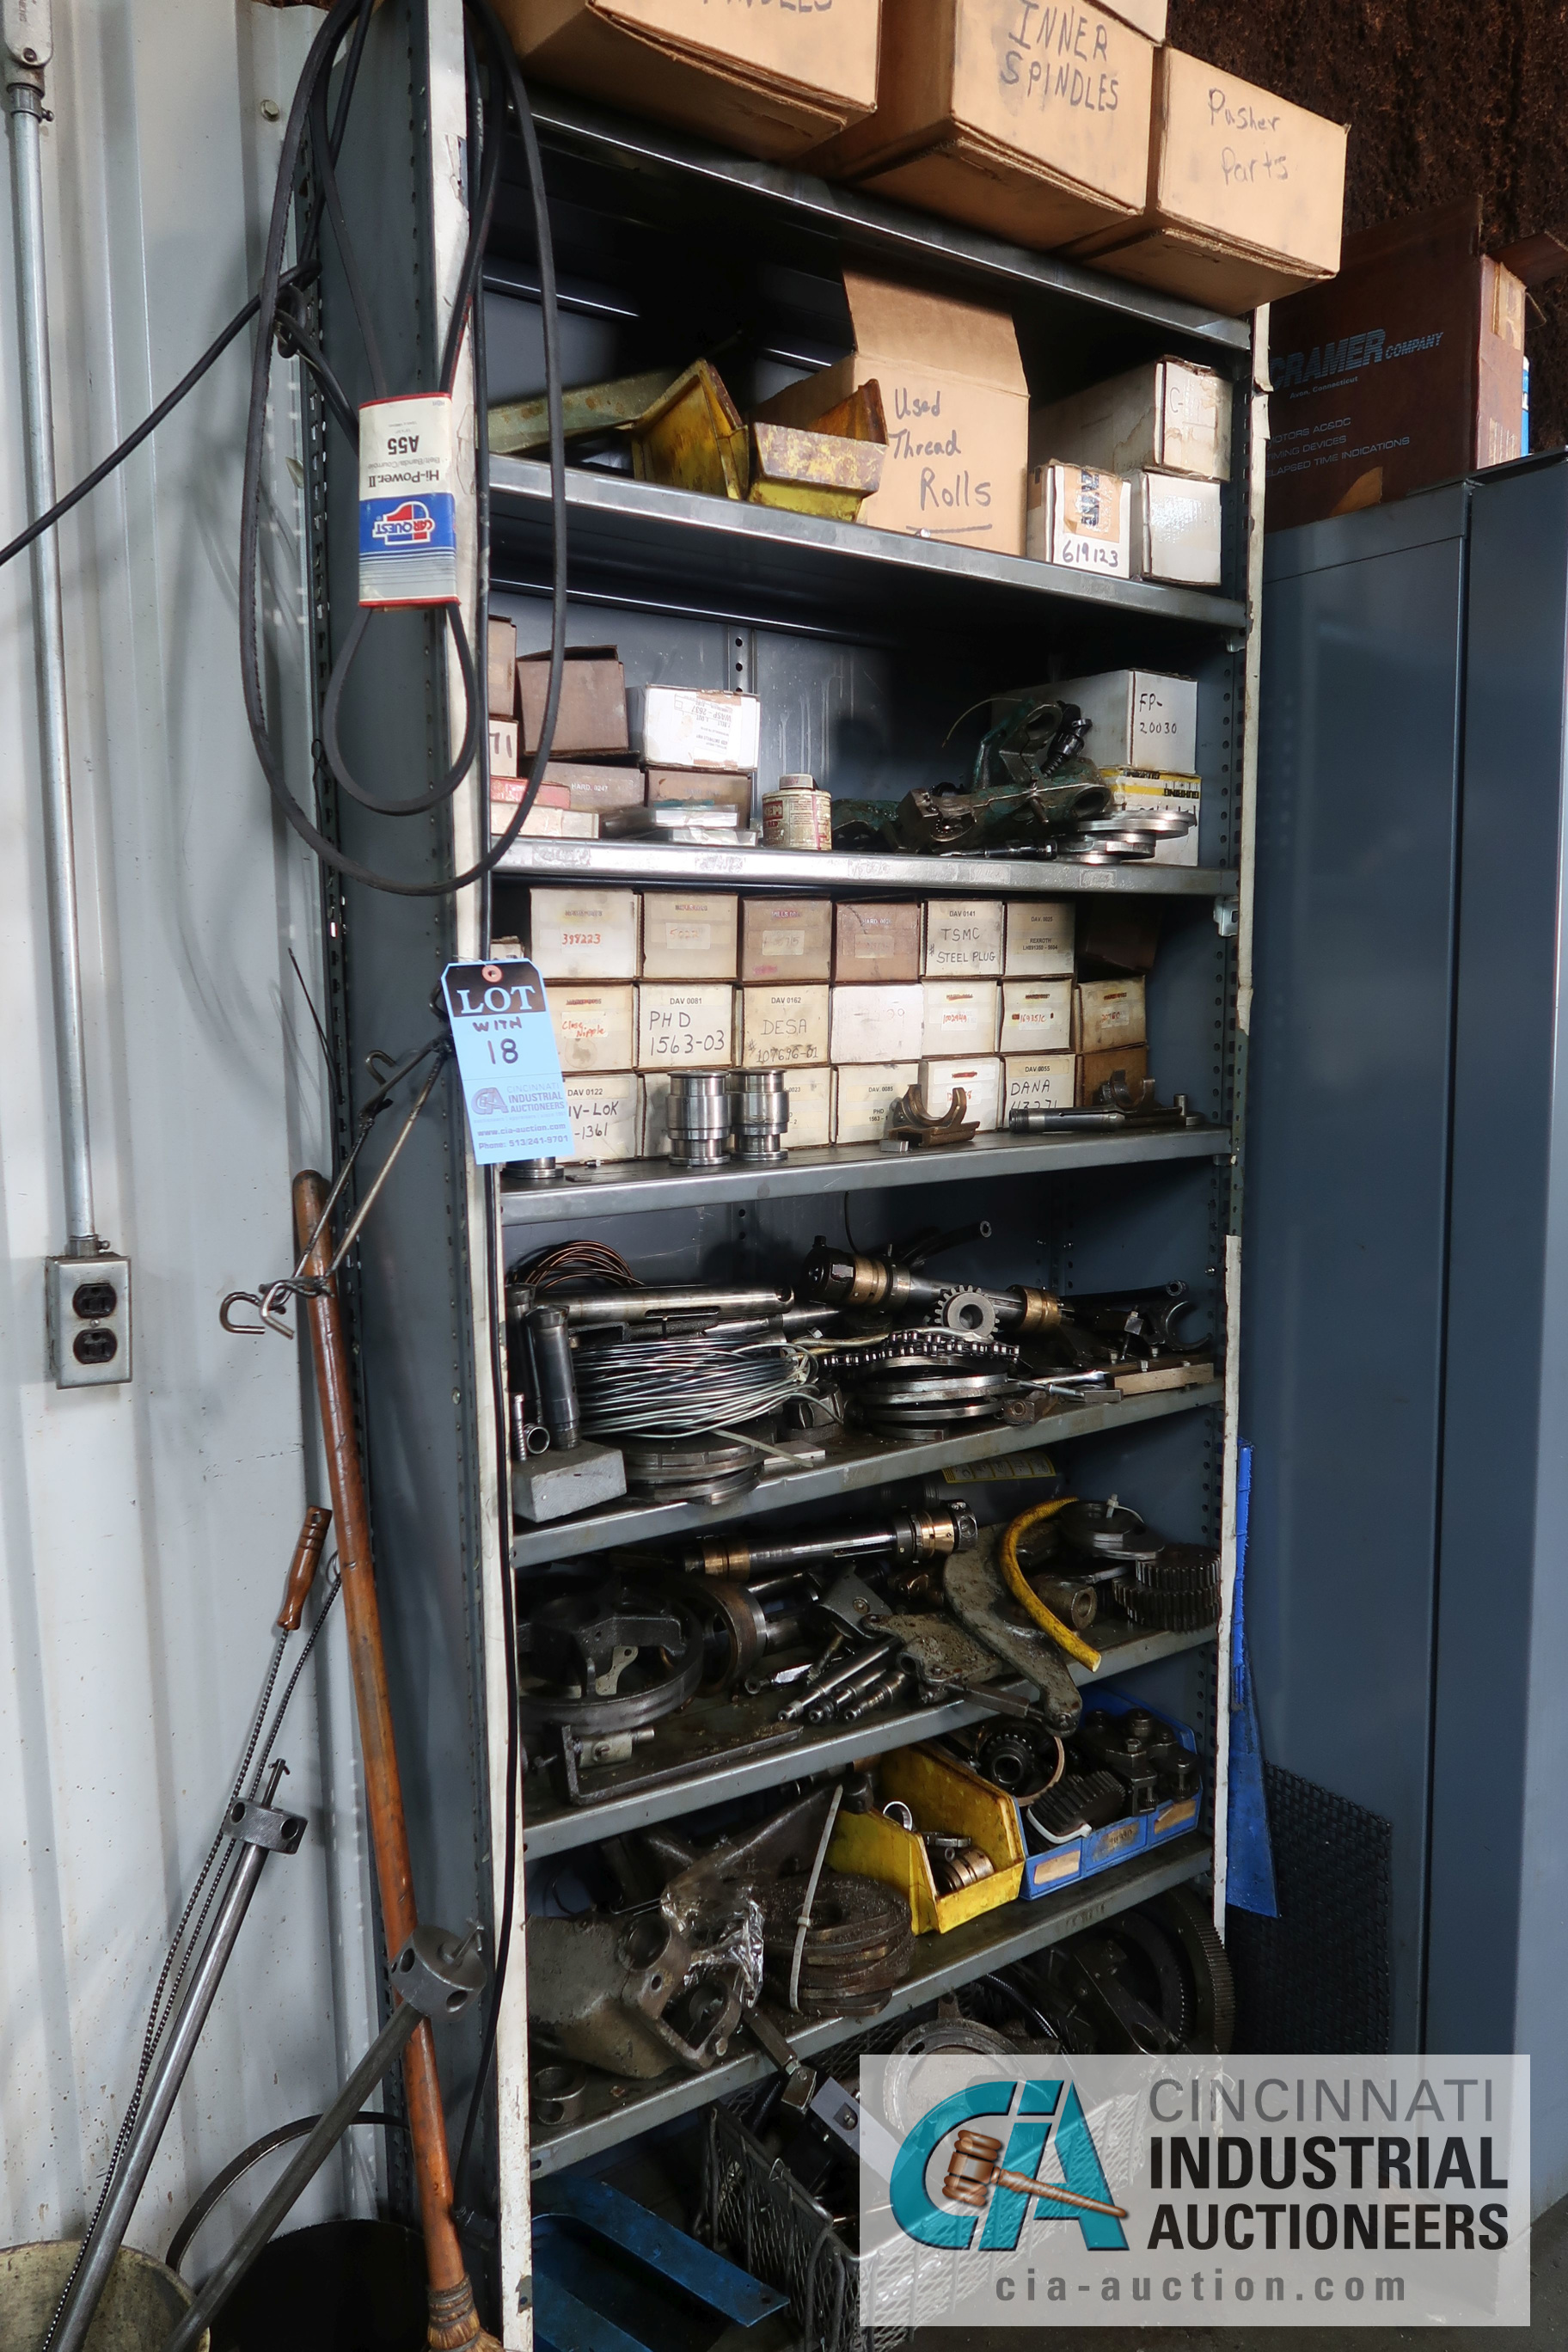 (LOT) LARGE ASSORTMENT MISCELLANEOUS DAVENPORT TOOLING, ATTACHMENTS, GEARS, CAMS AND OTHER RELATED - Image 12 of 21